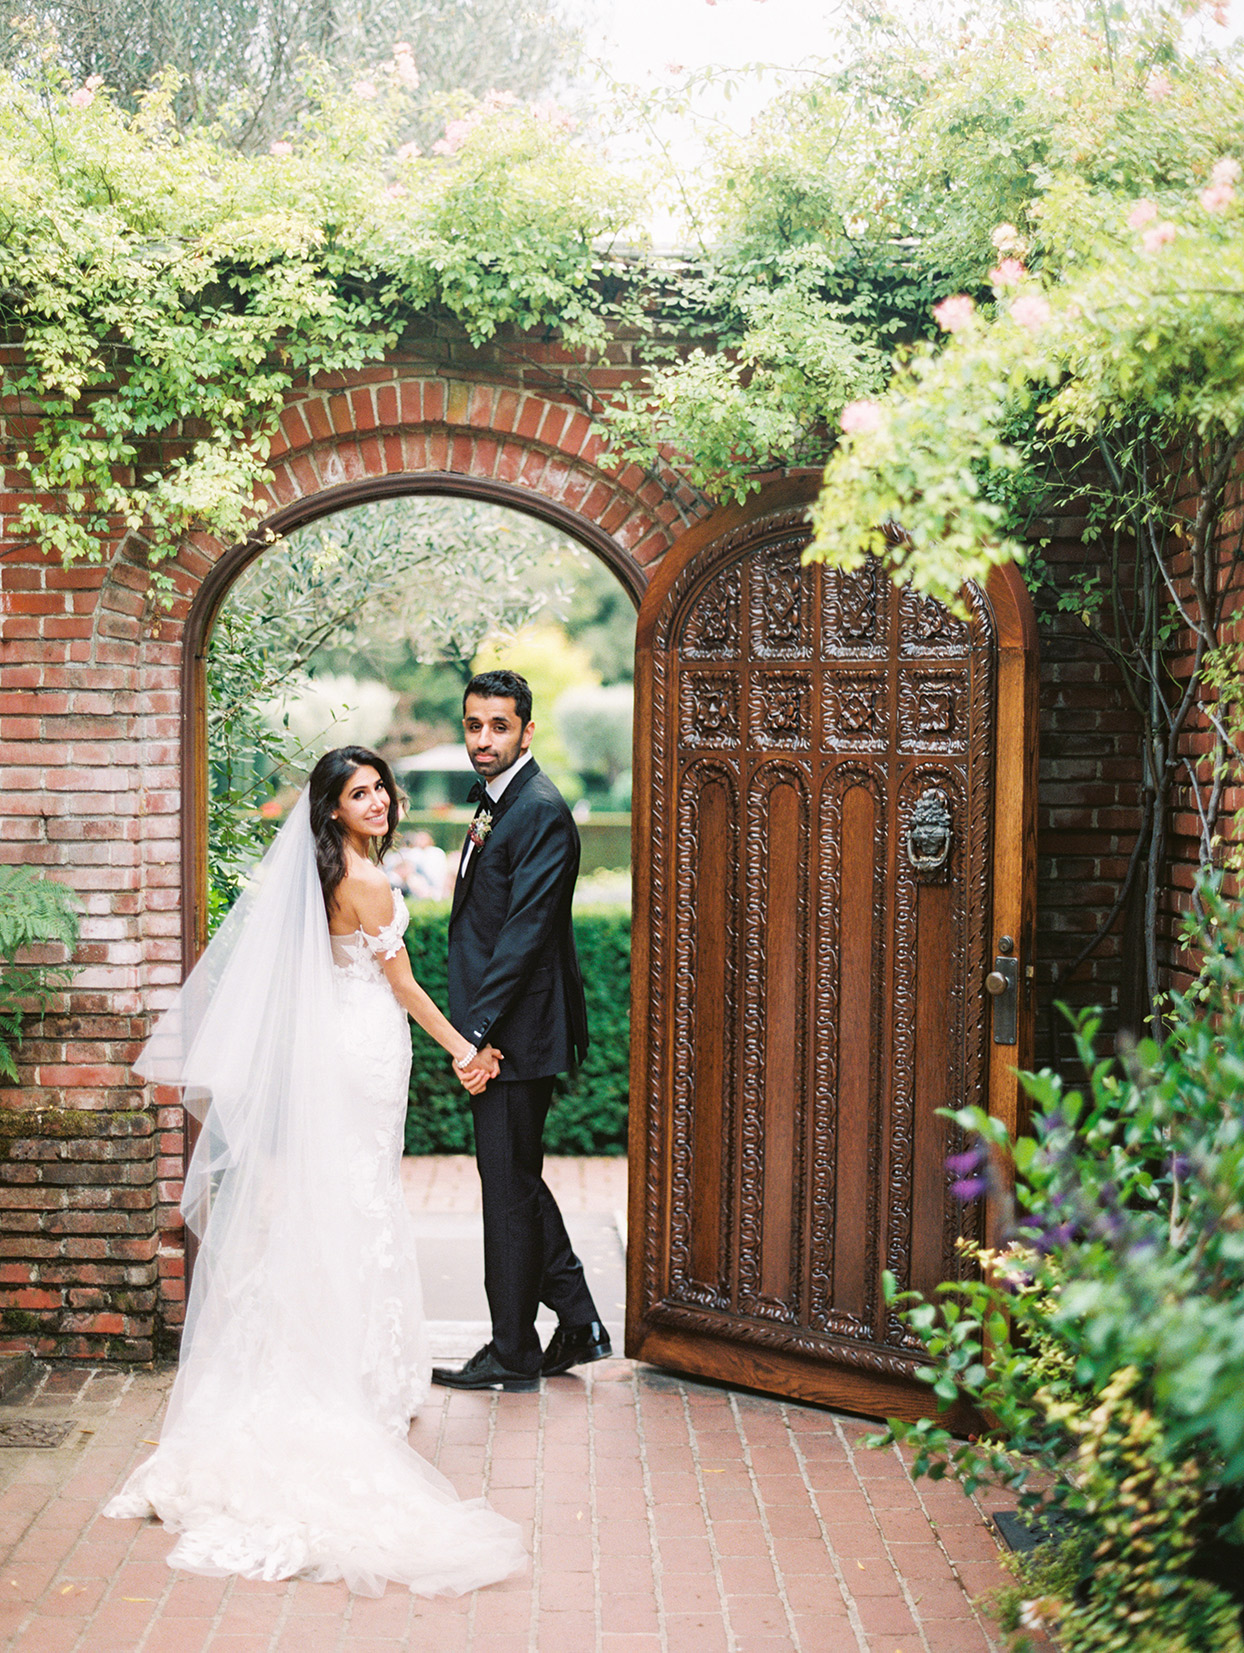 yalda anusha wedding couple in ornate doorway